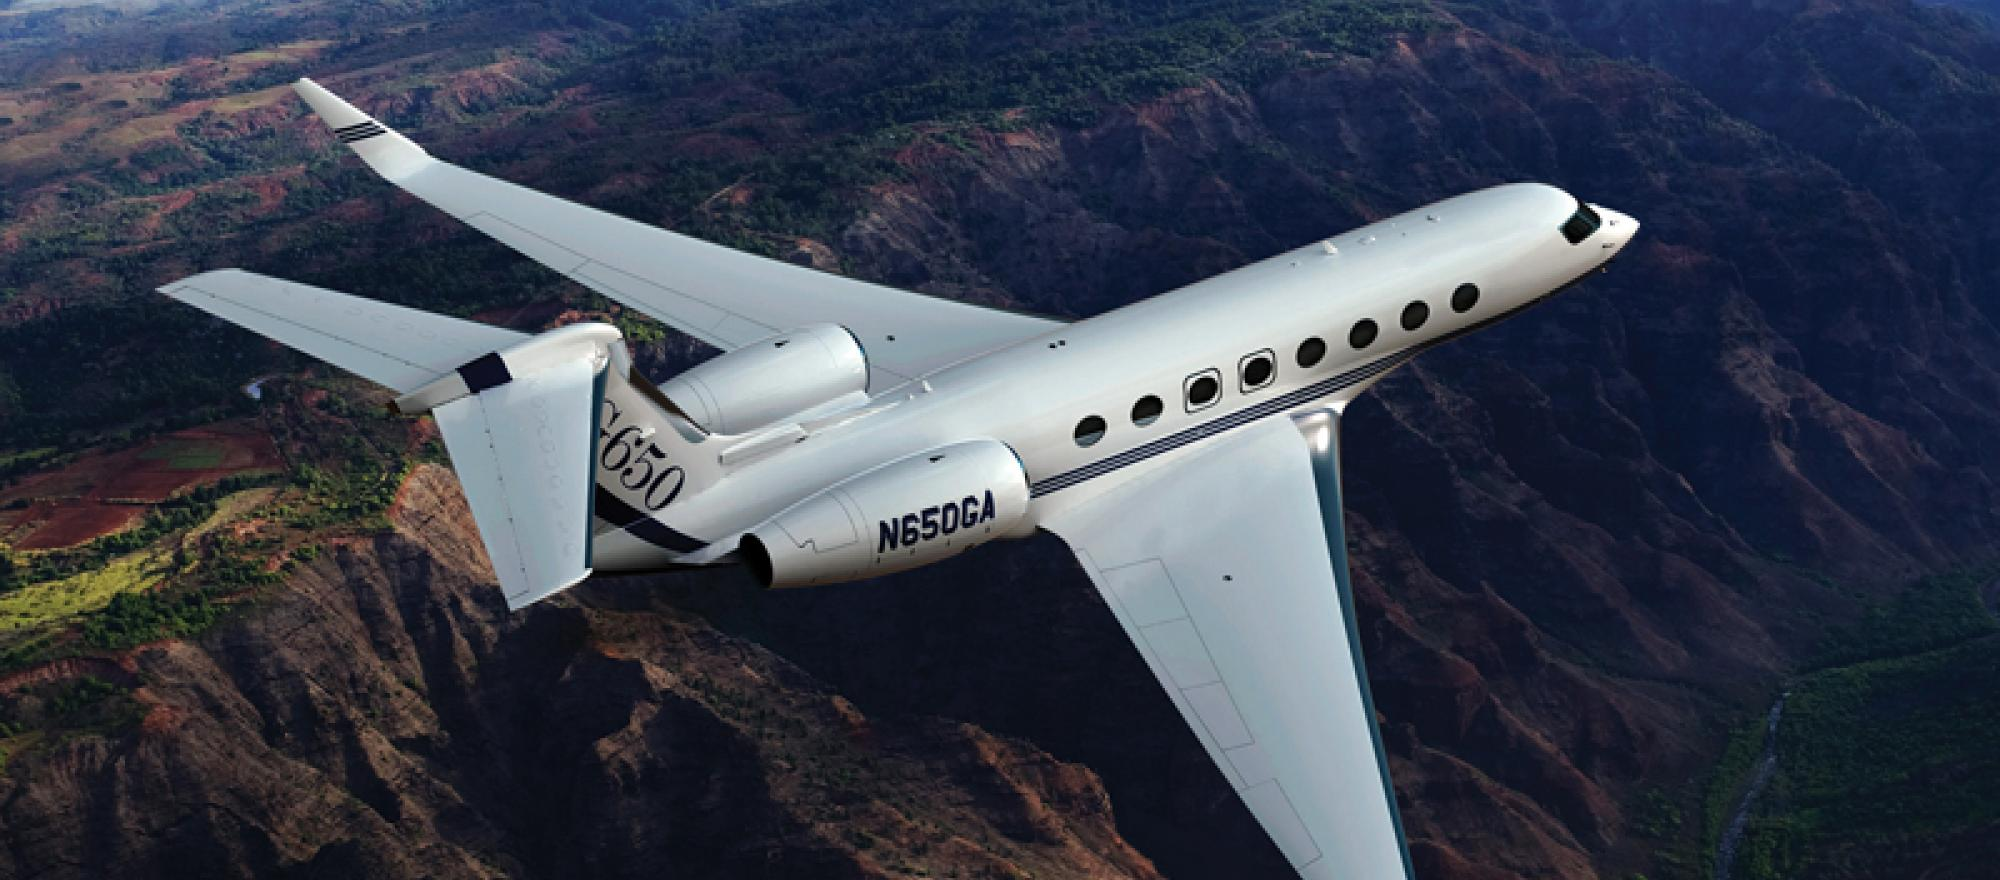 Gulfstream g650 business jet traveler for Large cabin business jets